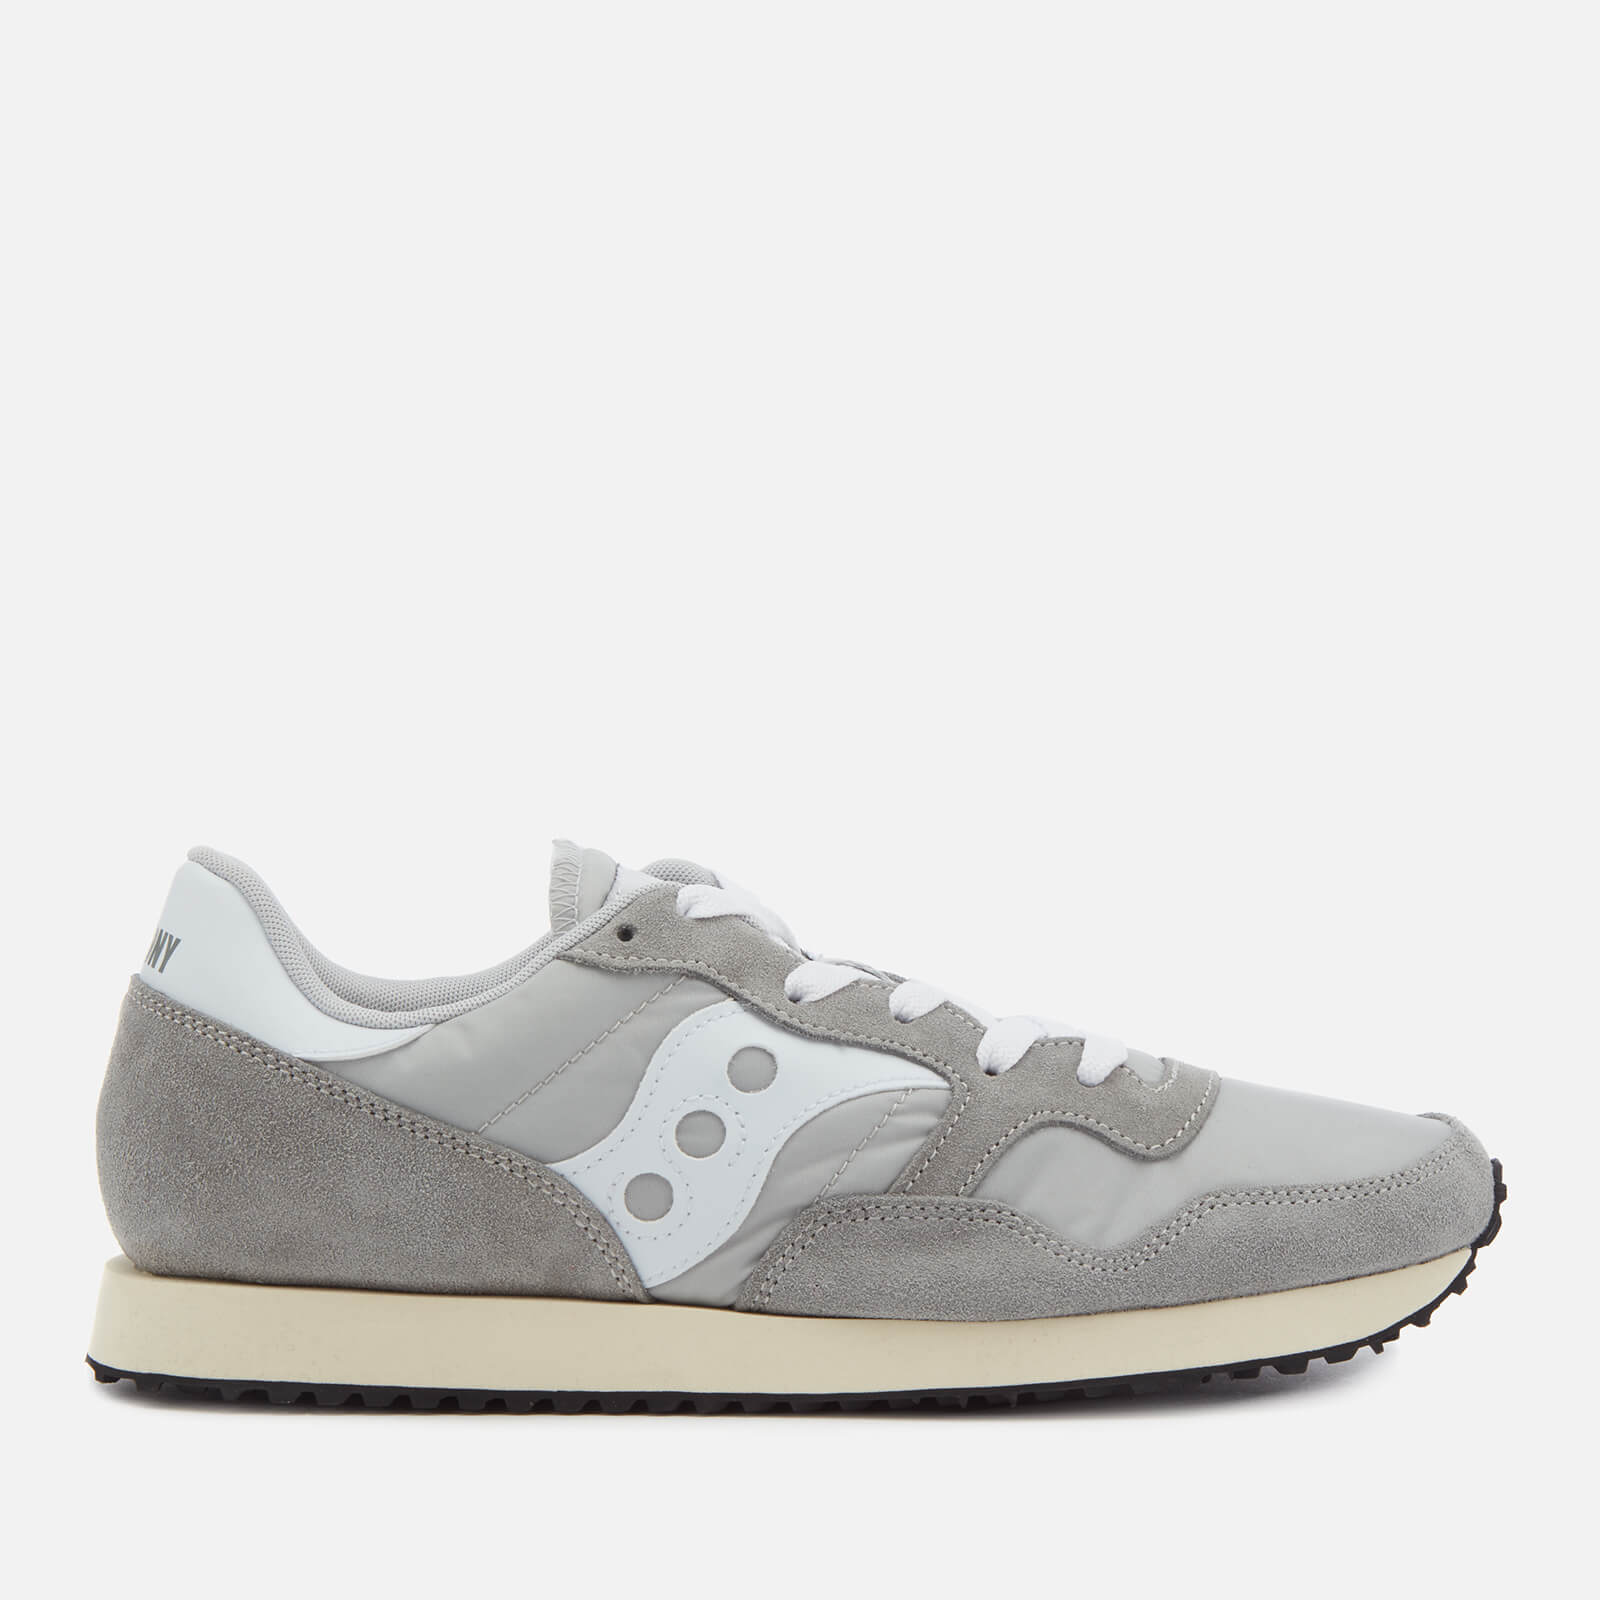 46997a0691 Saucony Men's DXN Vintage Trainers - Grey/White